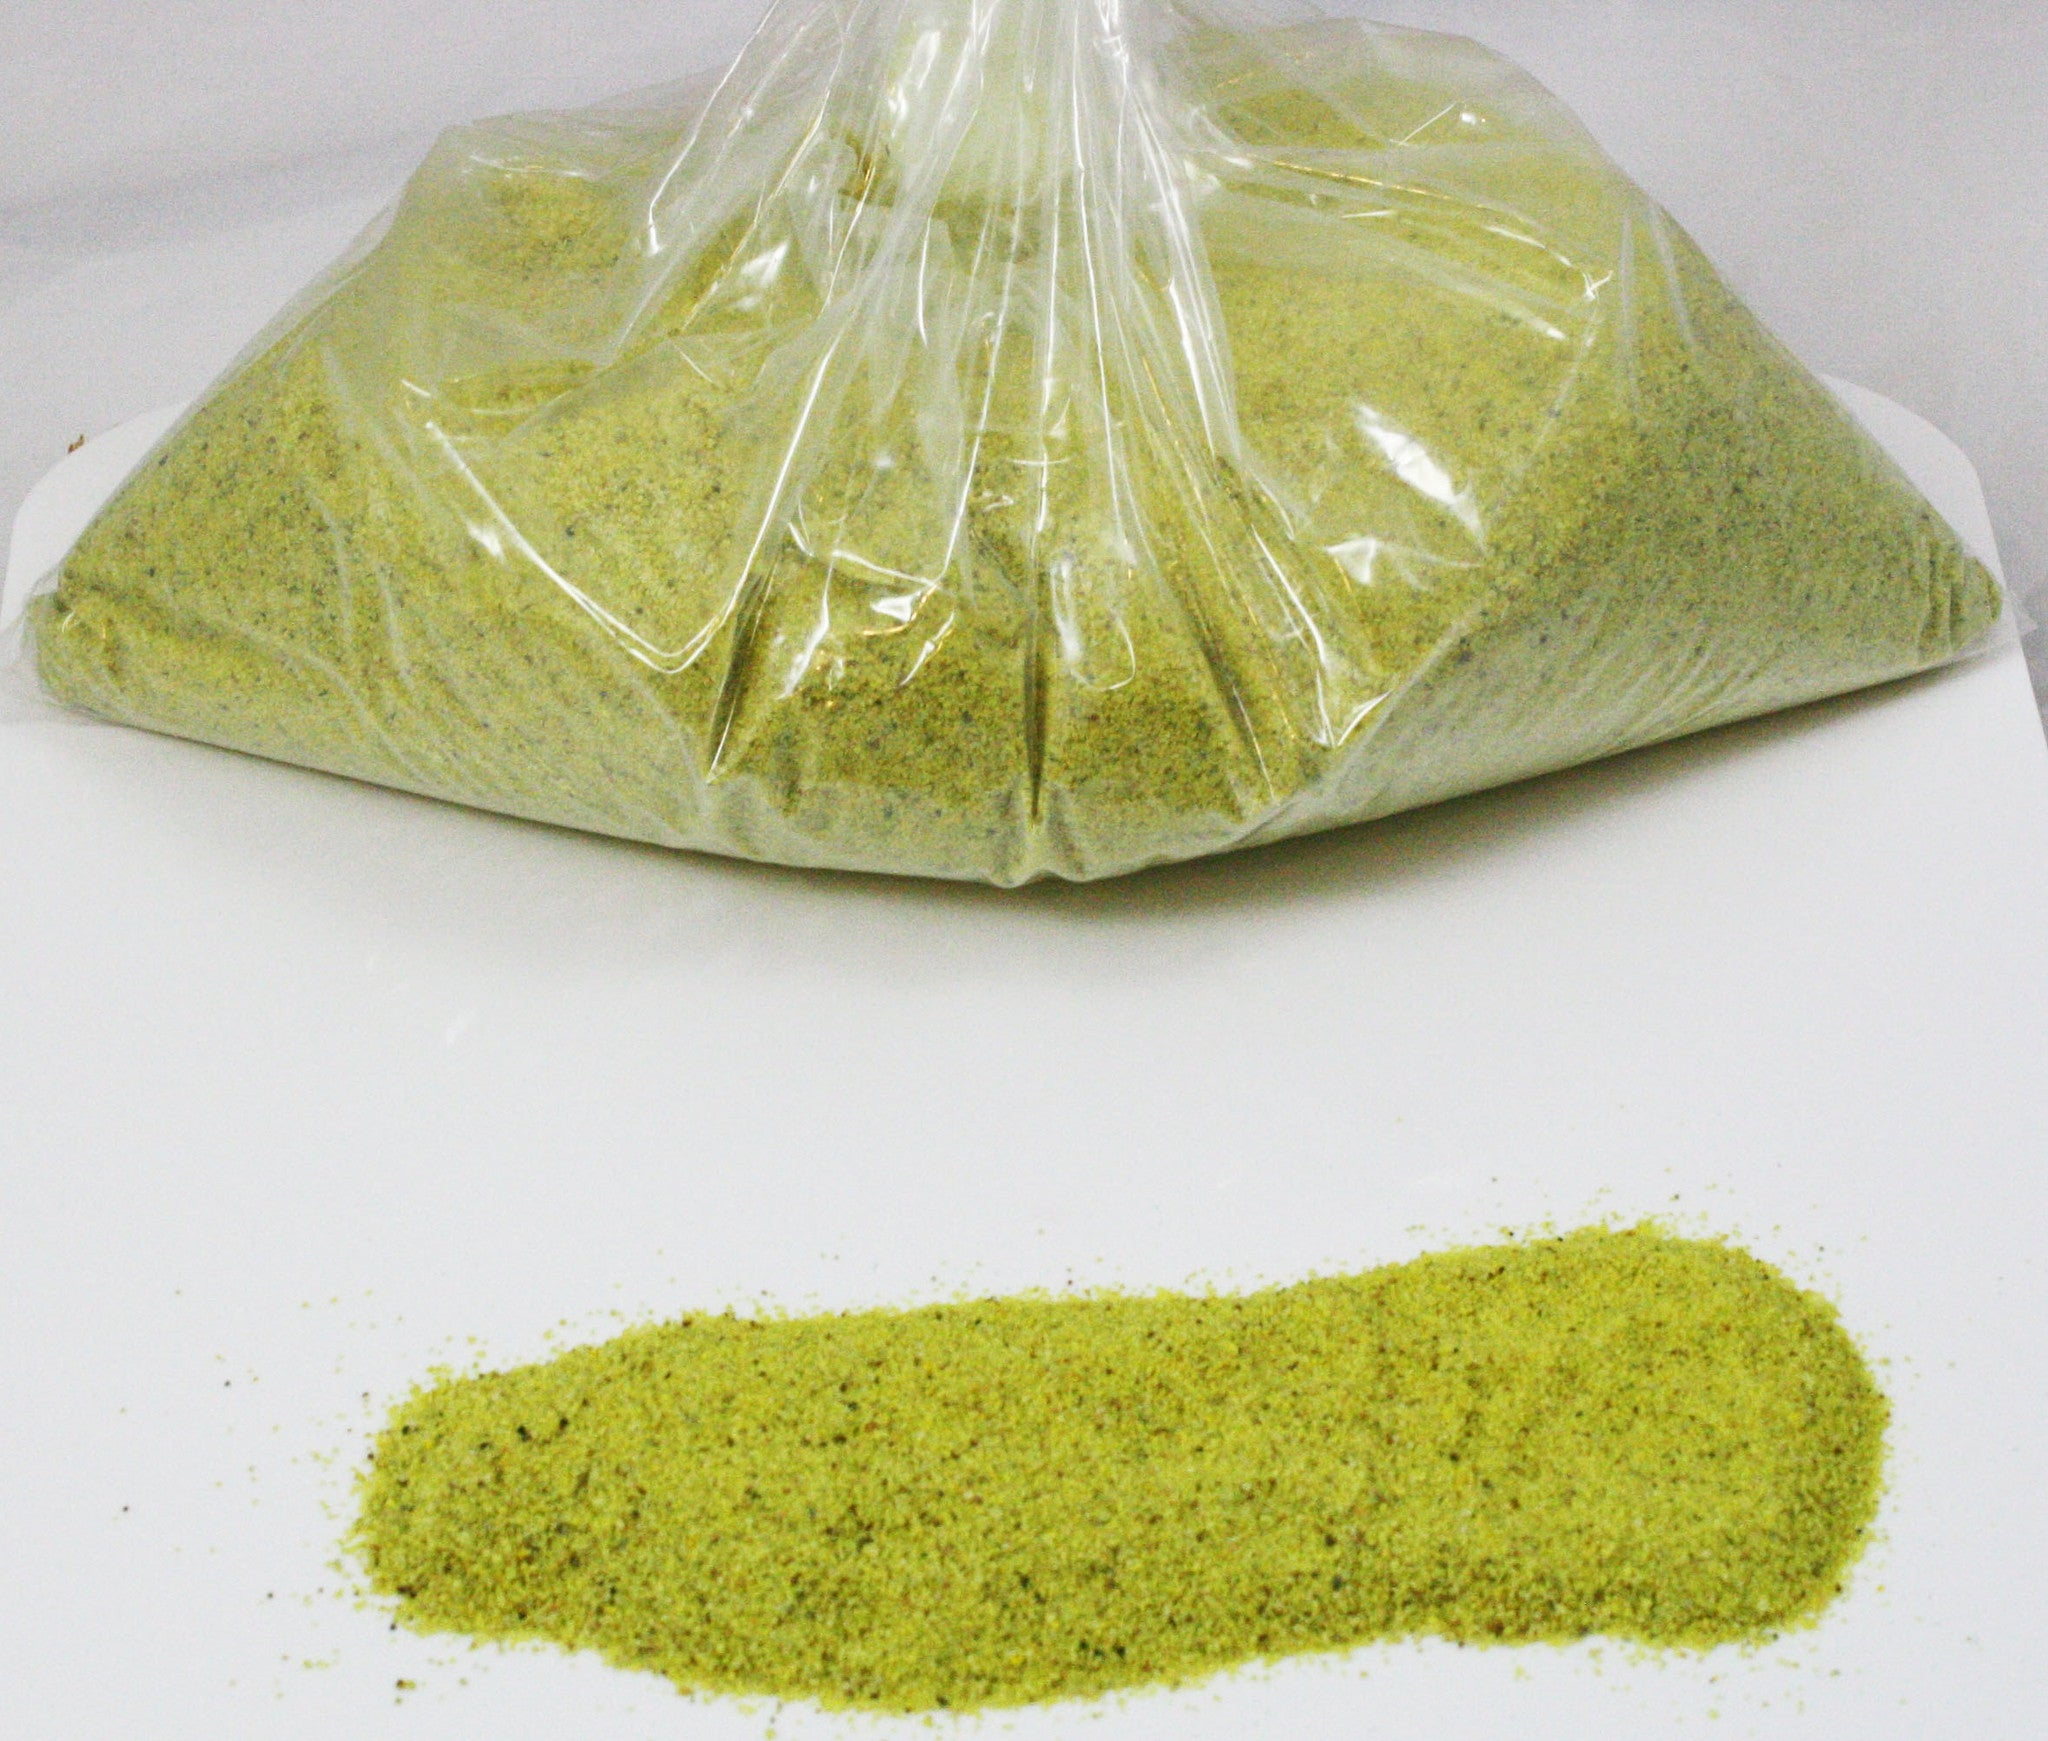 Yellow Space Sand: 5lbs of Bulk Hydrophobic Sand - Off The Wall Toys and Gifts